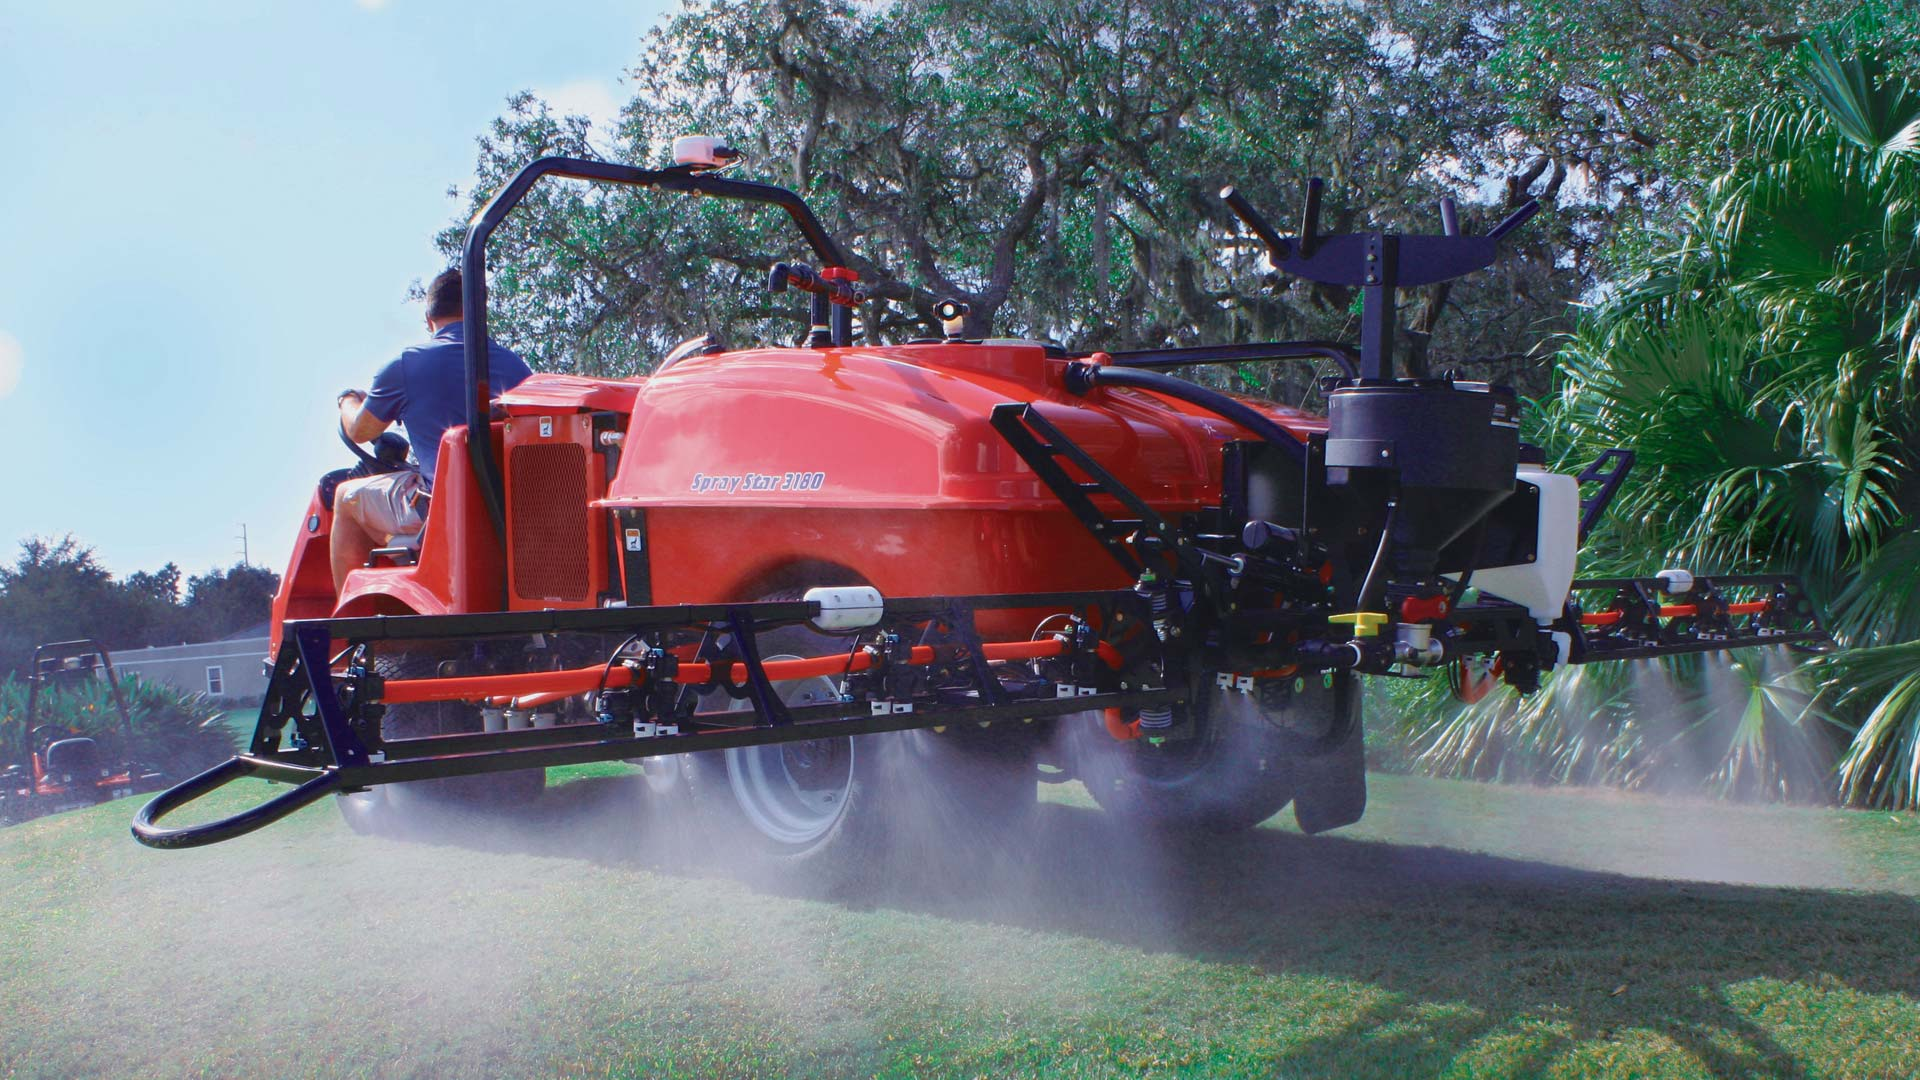 Smithco Spray Star 3180